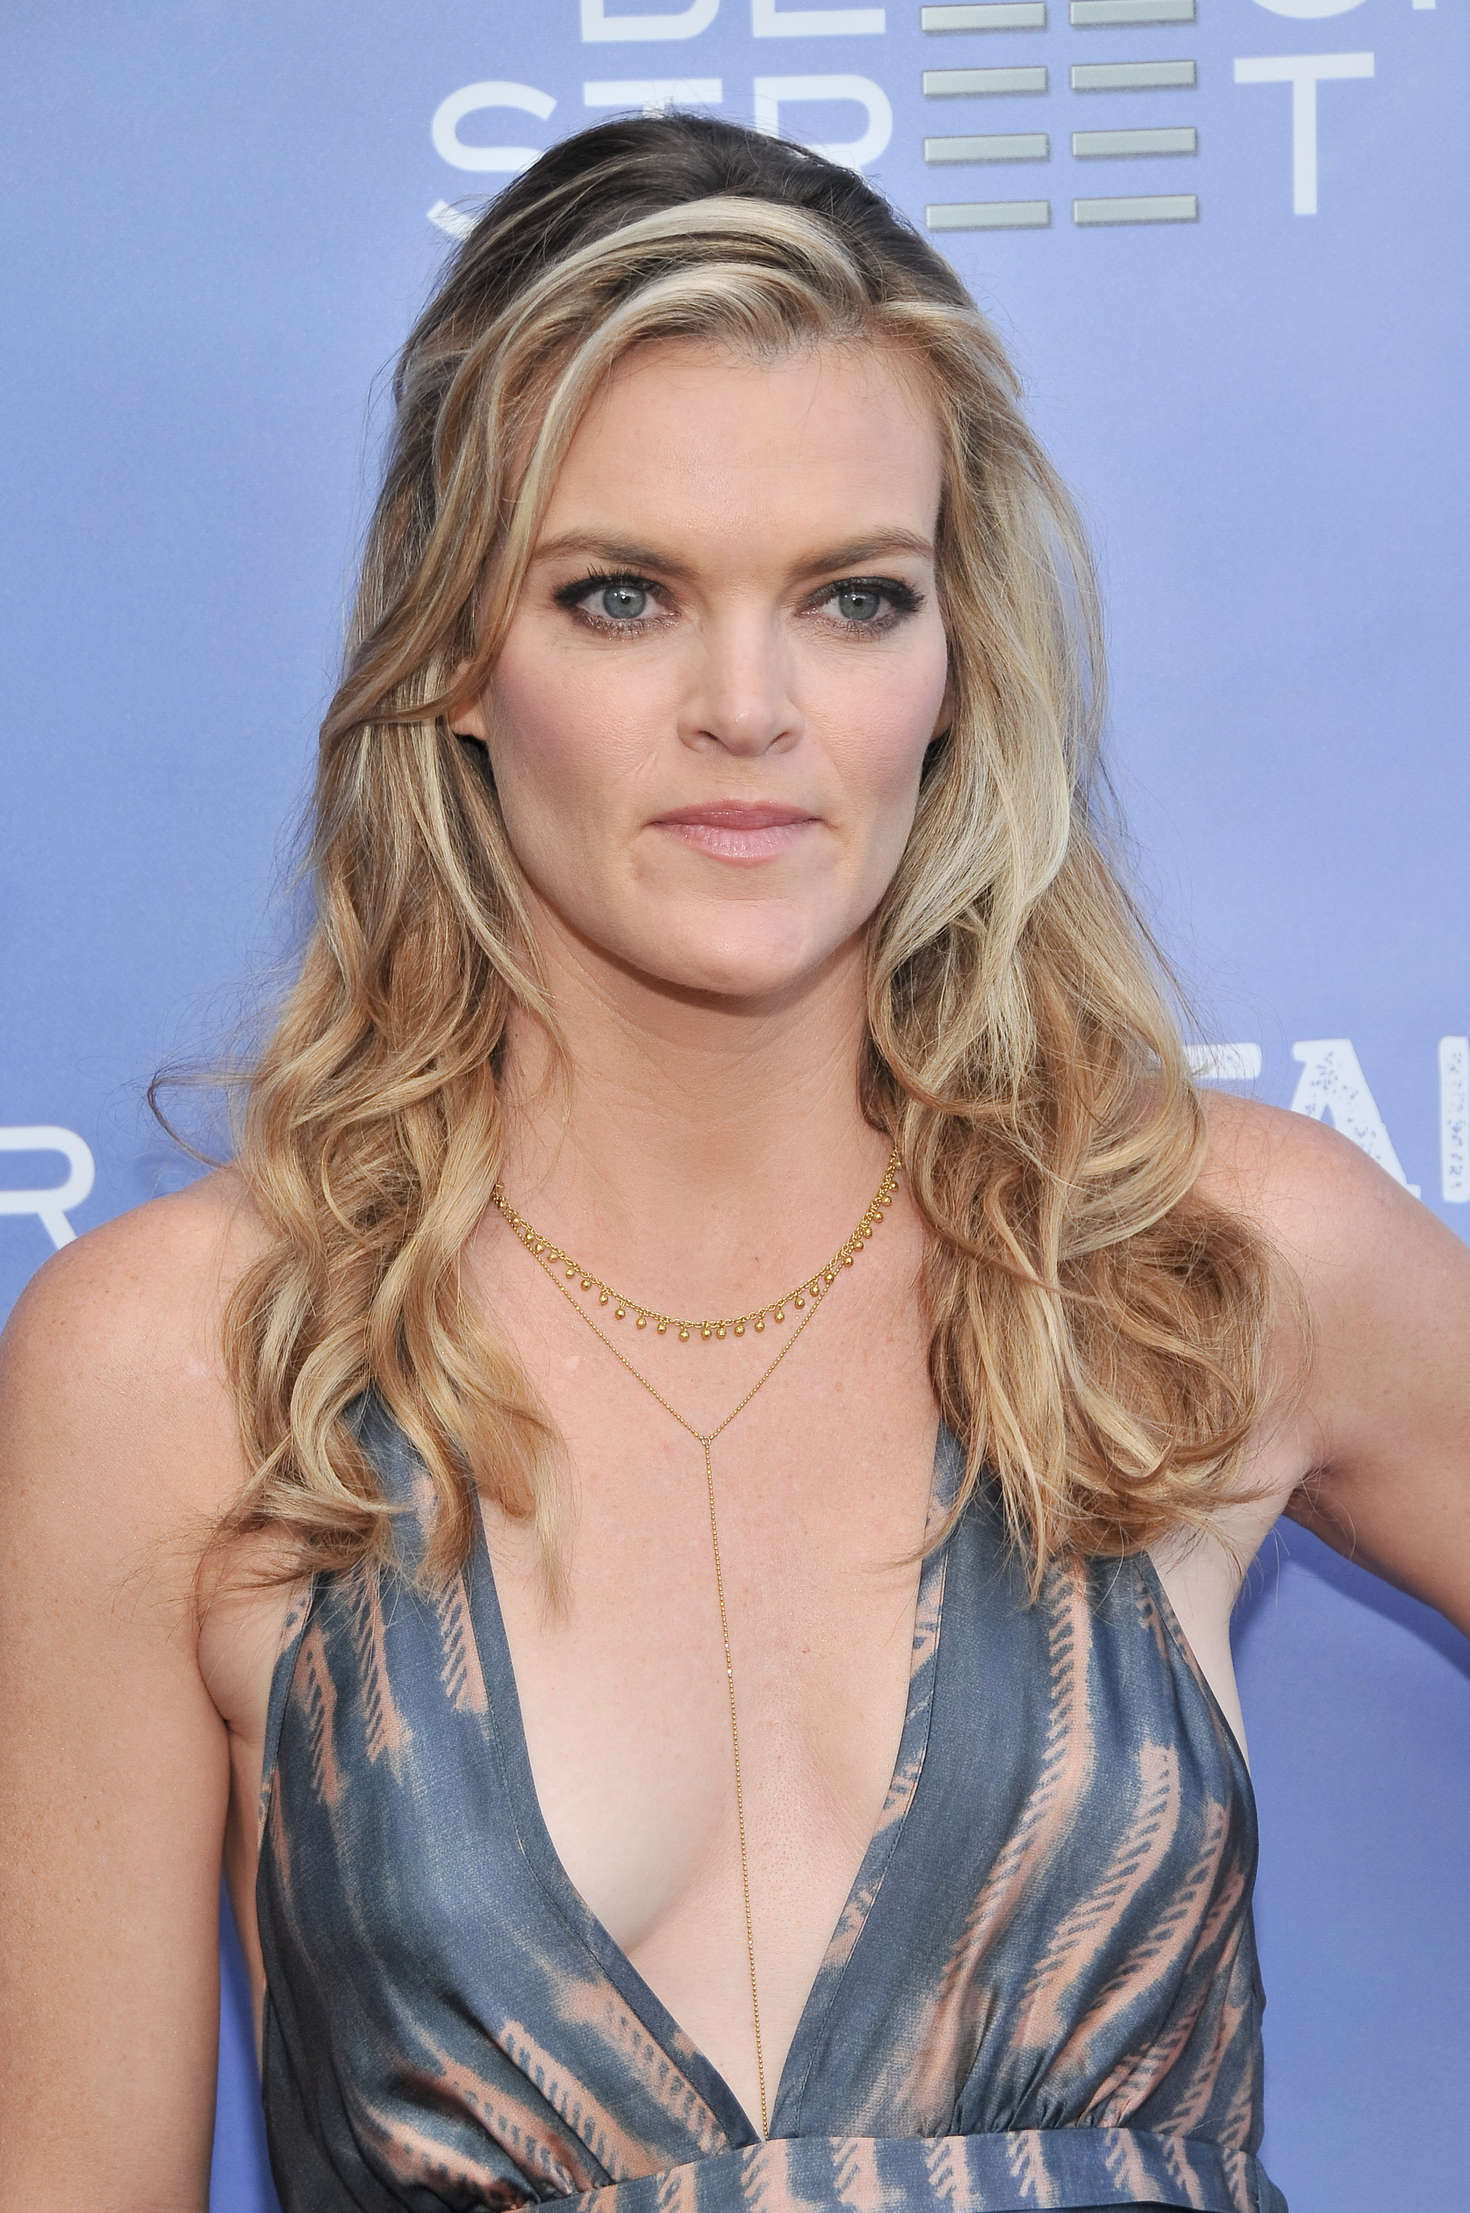 Forum on this topic: Wilma Pelly, missi-pyle/